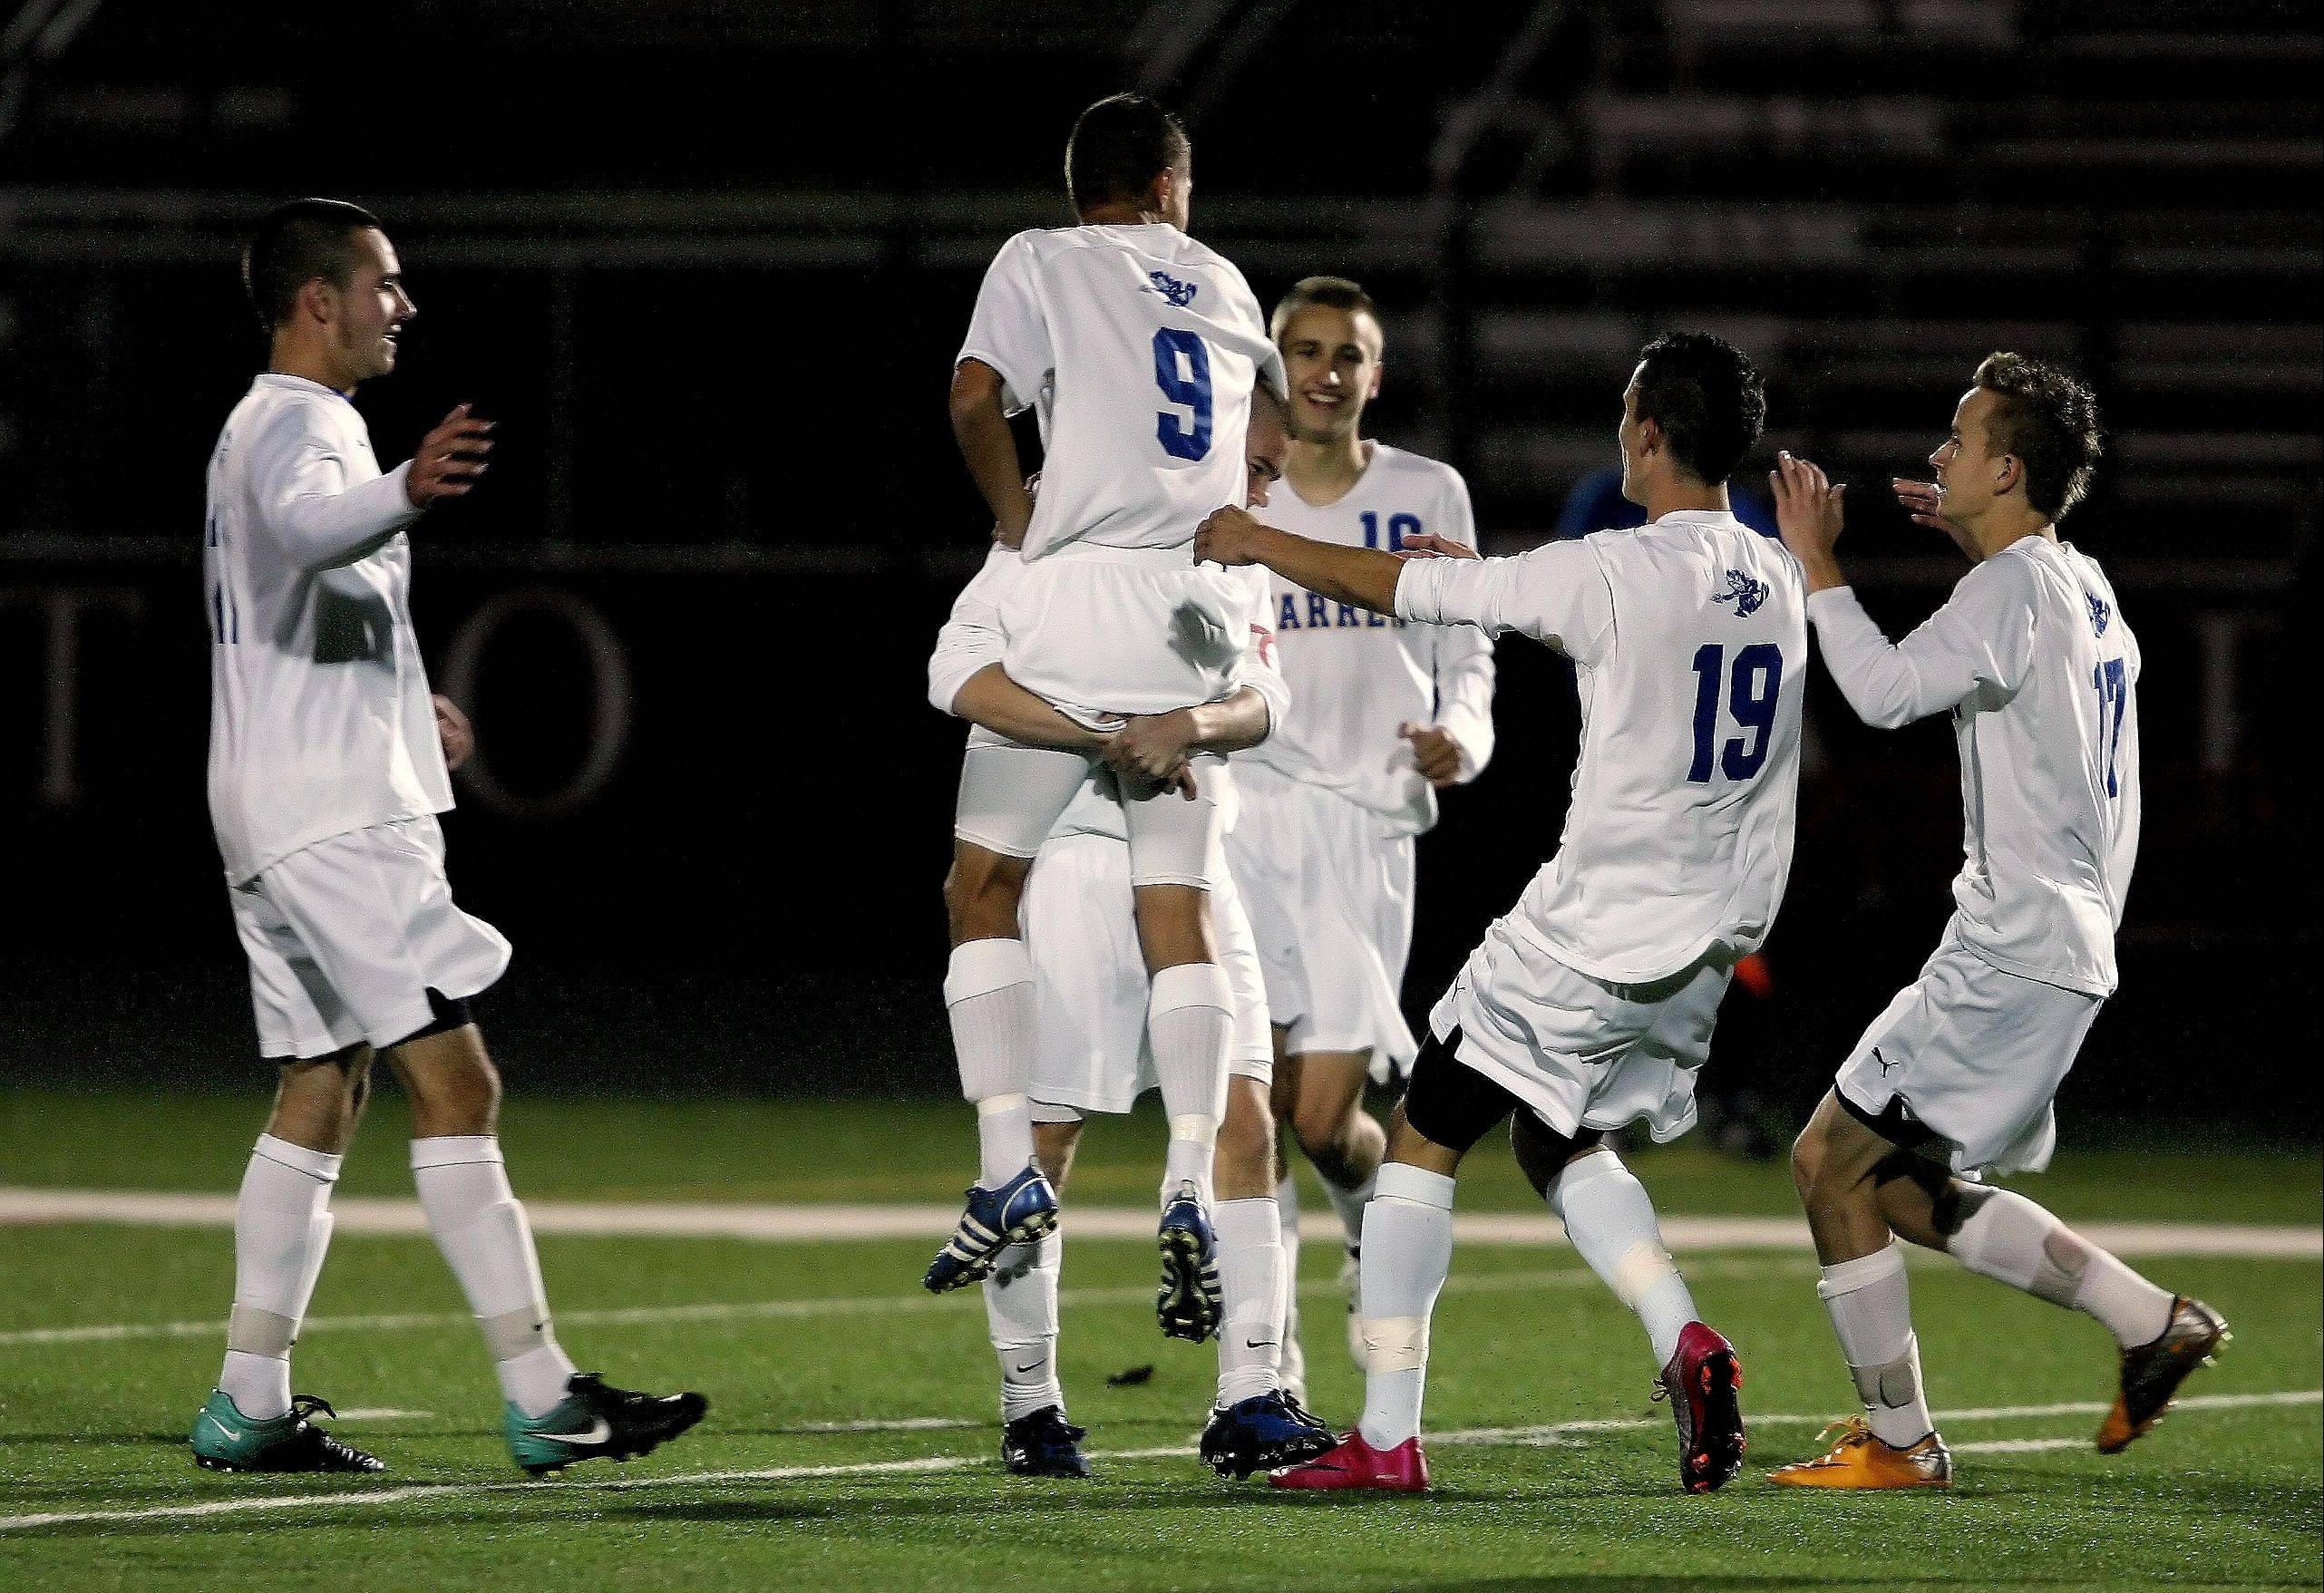 Warren teammates celebrate after Daniel Szczepanek scored during last season�s supersectional game against Schaumburg at Barrington. The Blue Devils are one win away from returning to the supersectional round after another standout season from Szczepanek, the Daily Herald�s all-area team captain.